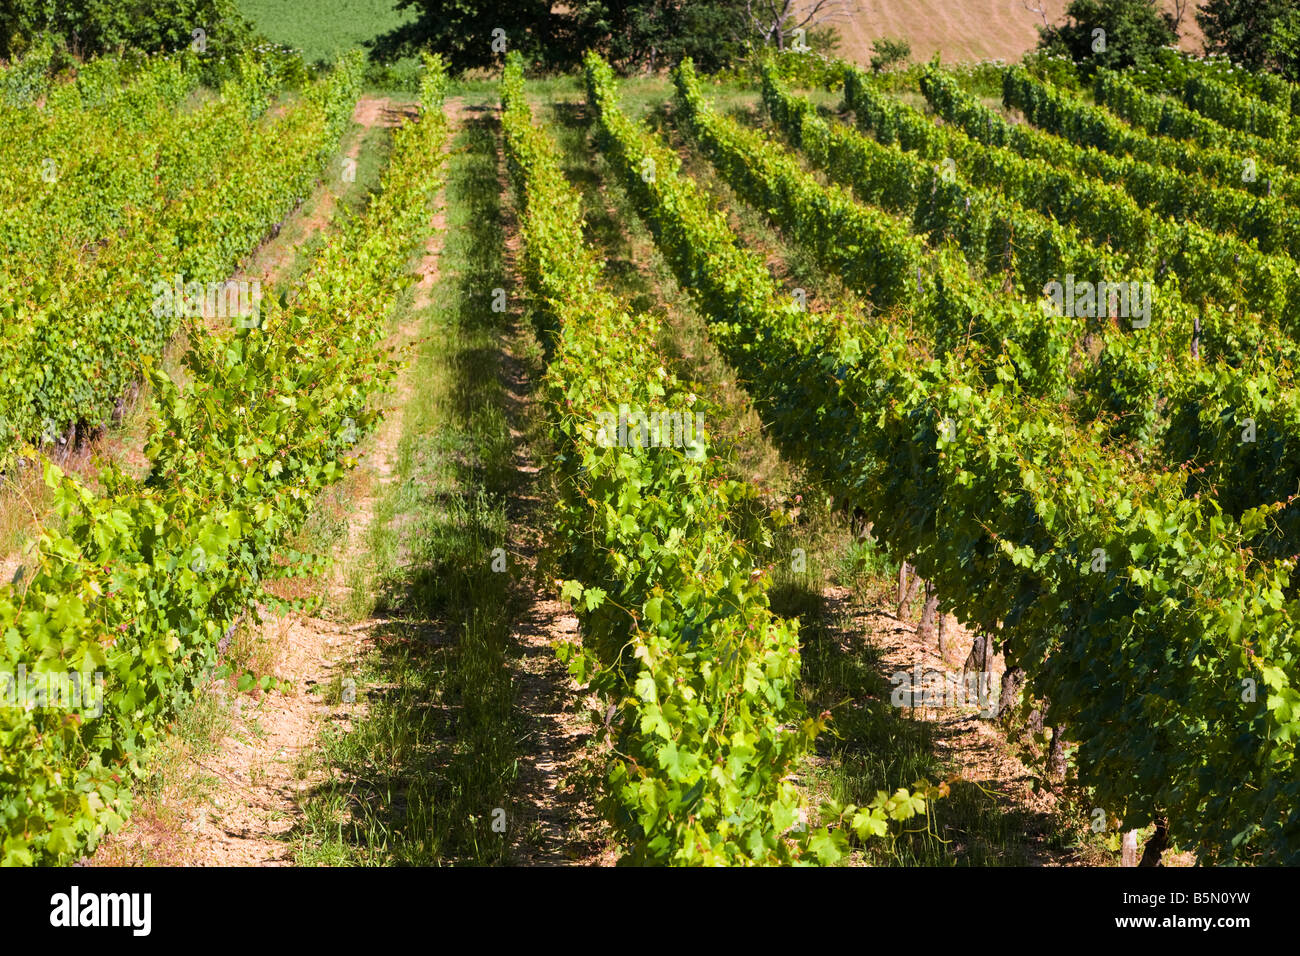 Rows of ripening vines in South West France Europe - Stock Image